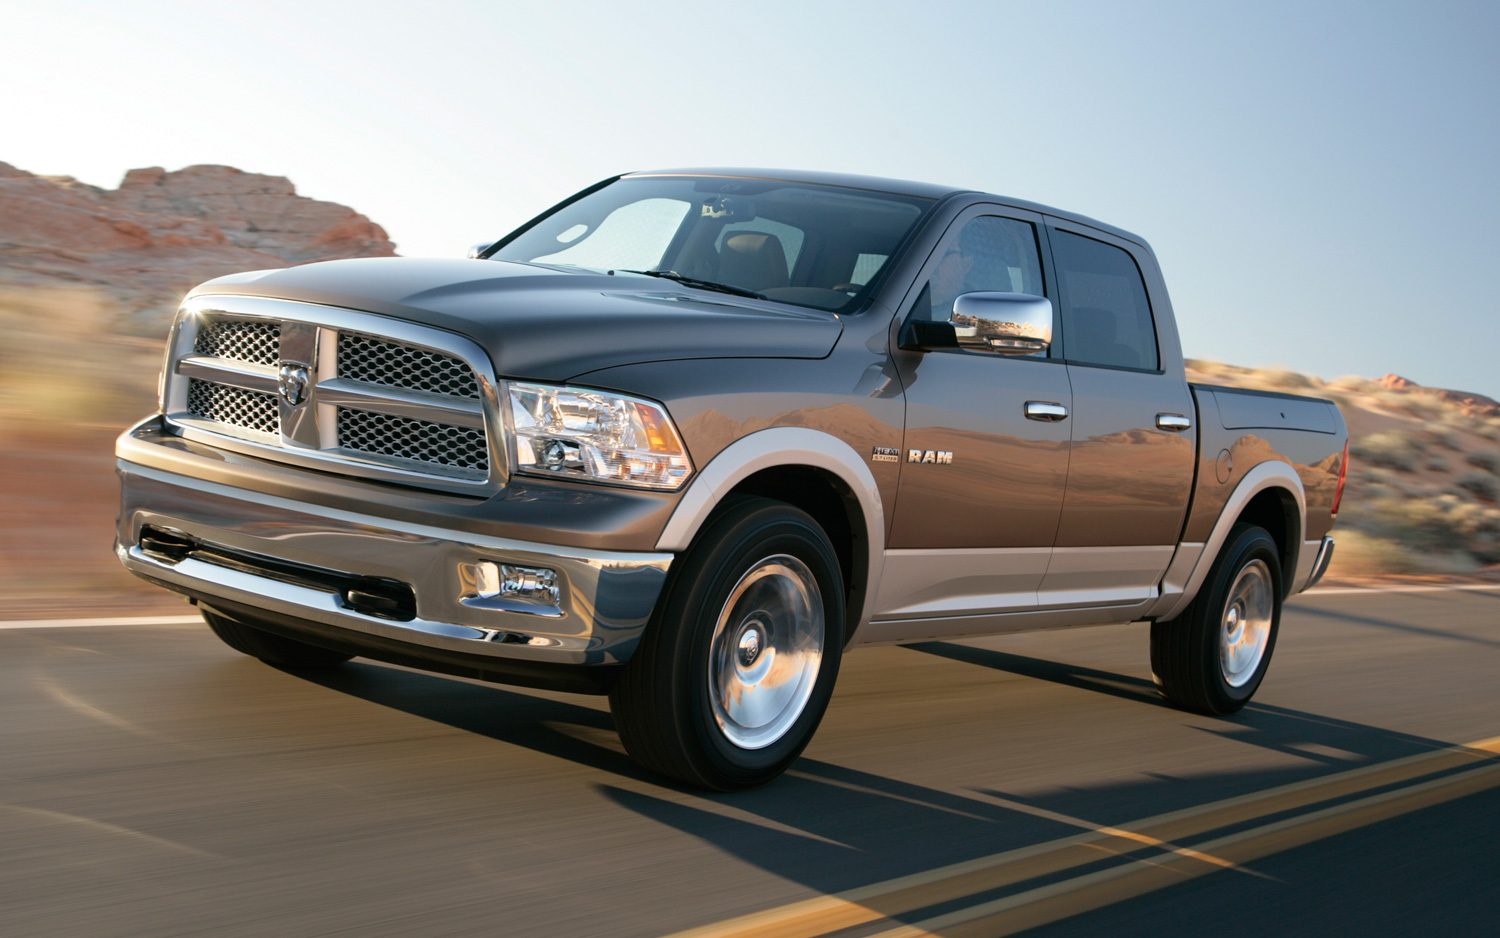 Stacked Truck: 4 Truck Traits To Make Yours Stand Out